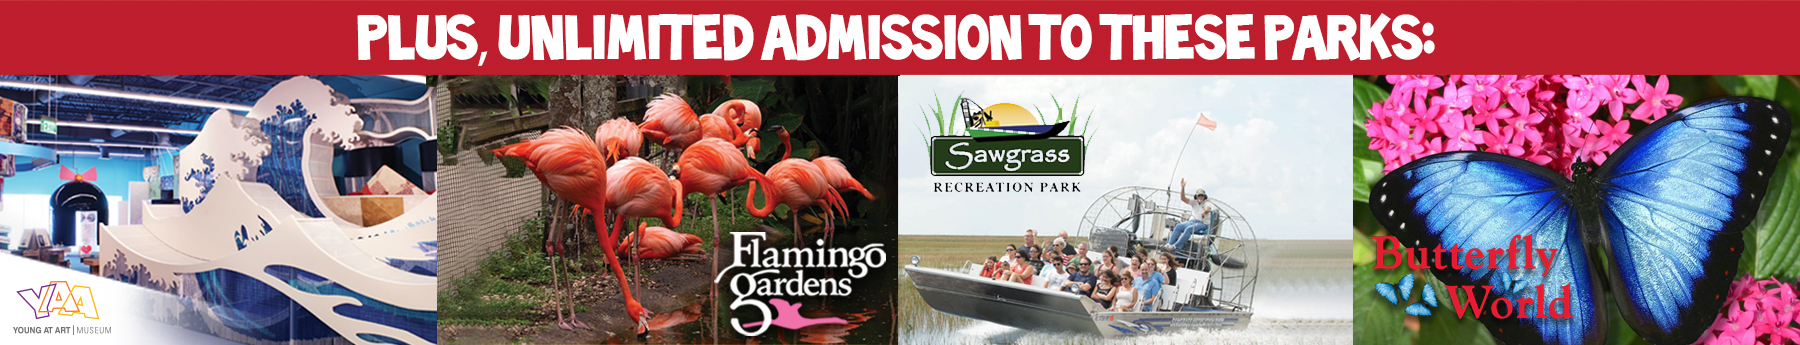 SFAP unlimited admission to these parks